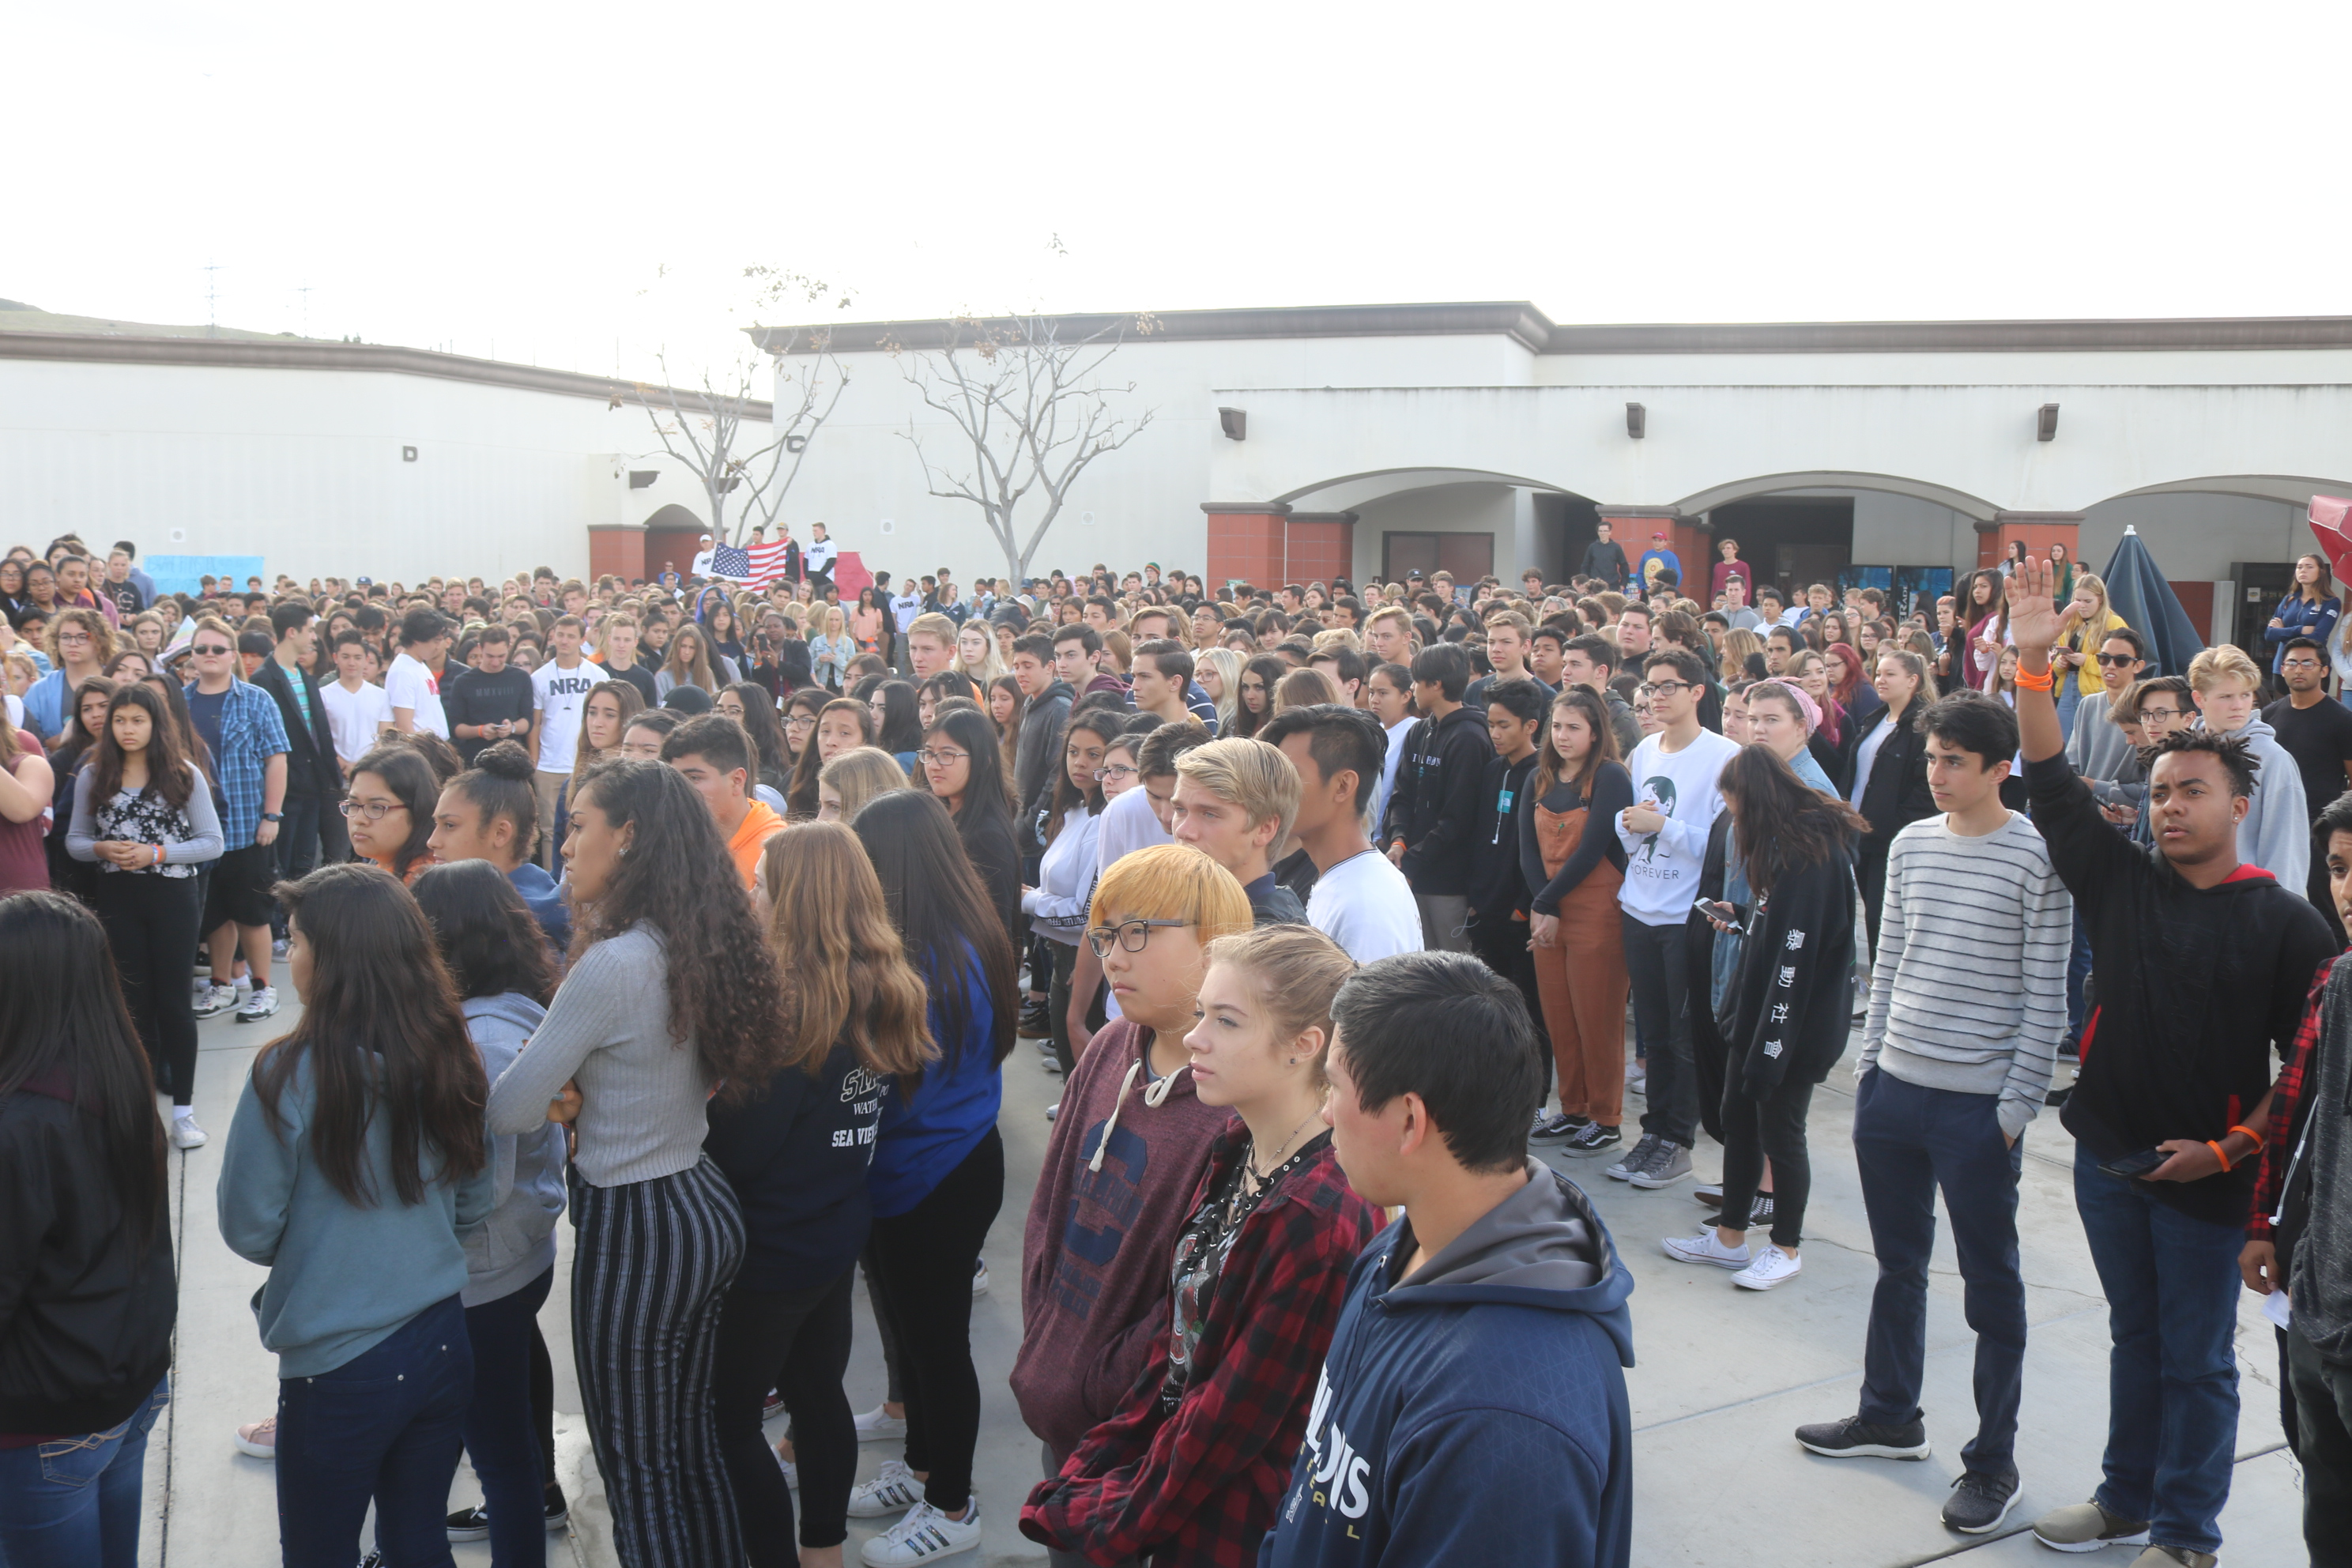 Nearly half of the students at SJHHS participated in the demonstration.